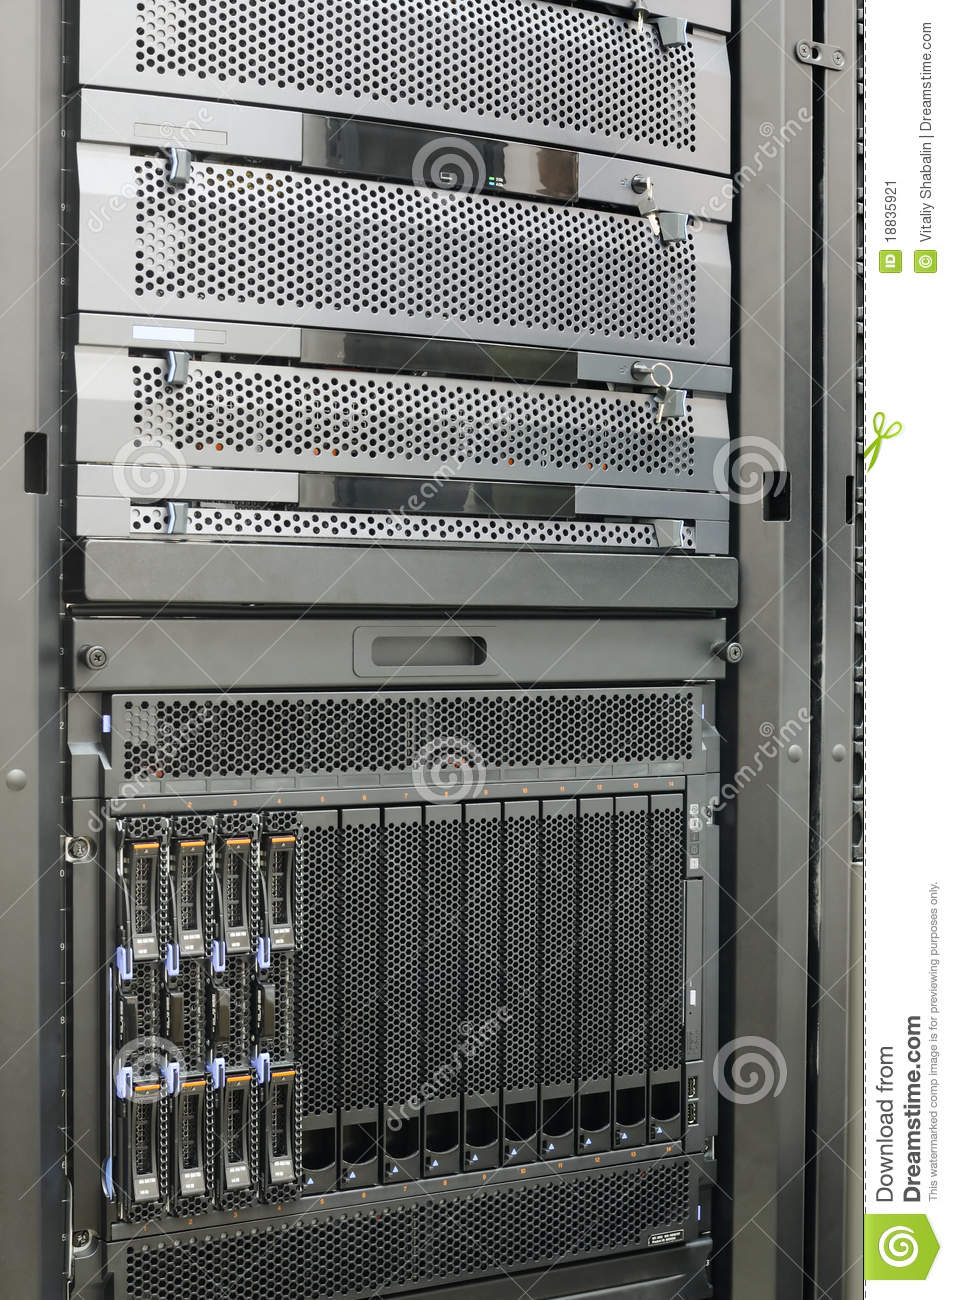 Rack Server Clipart Rack Mounted Blade Servers #49DH2O.